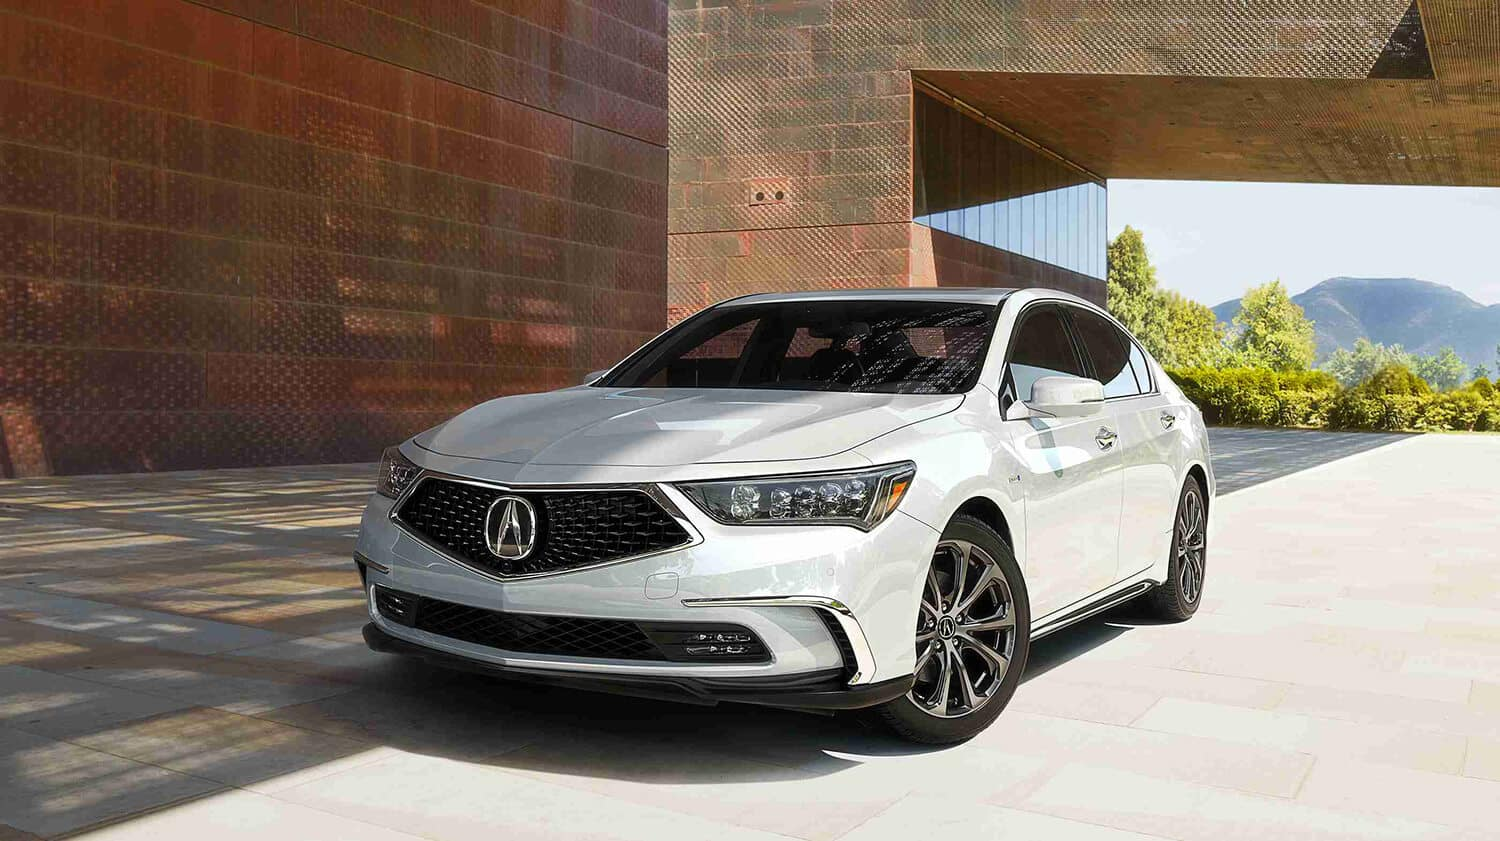 2018 Acura RLX Exterior Front Angle Driver Side